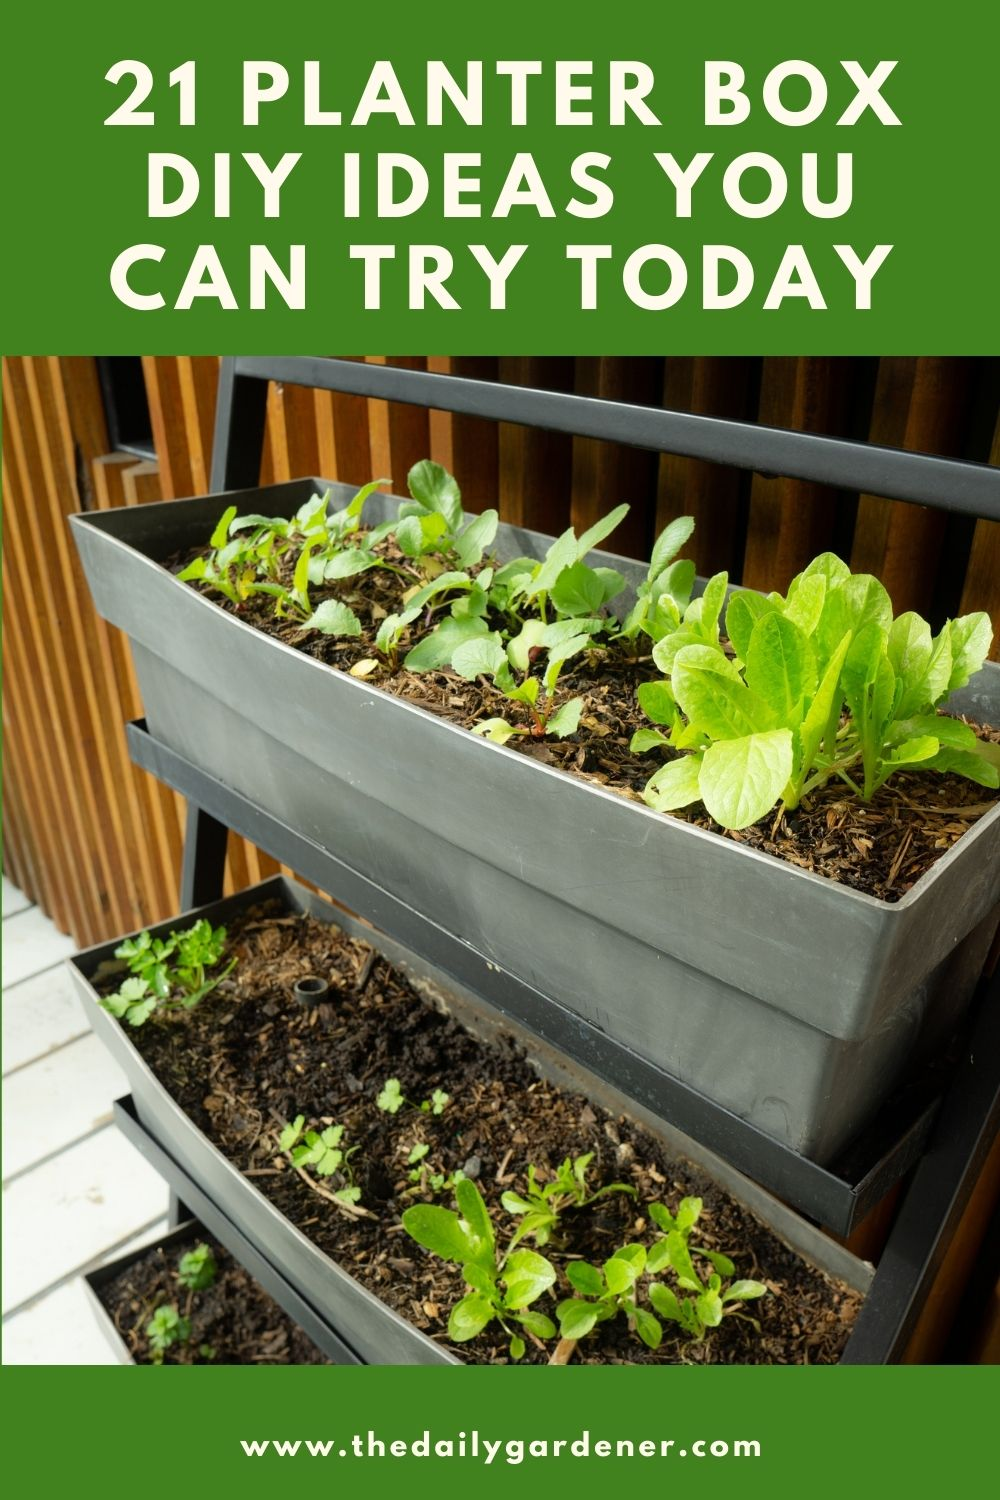 21 Planter Box DIY Ideas You Can Try Today 1